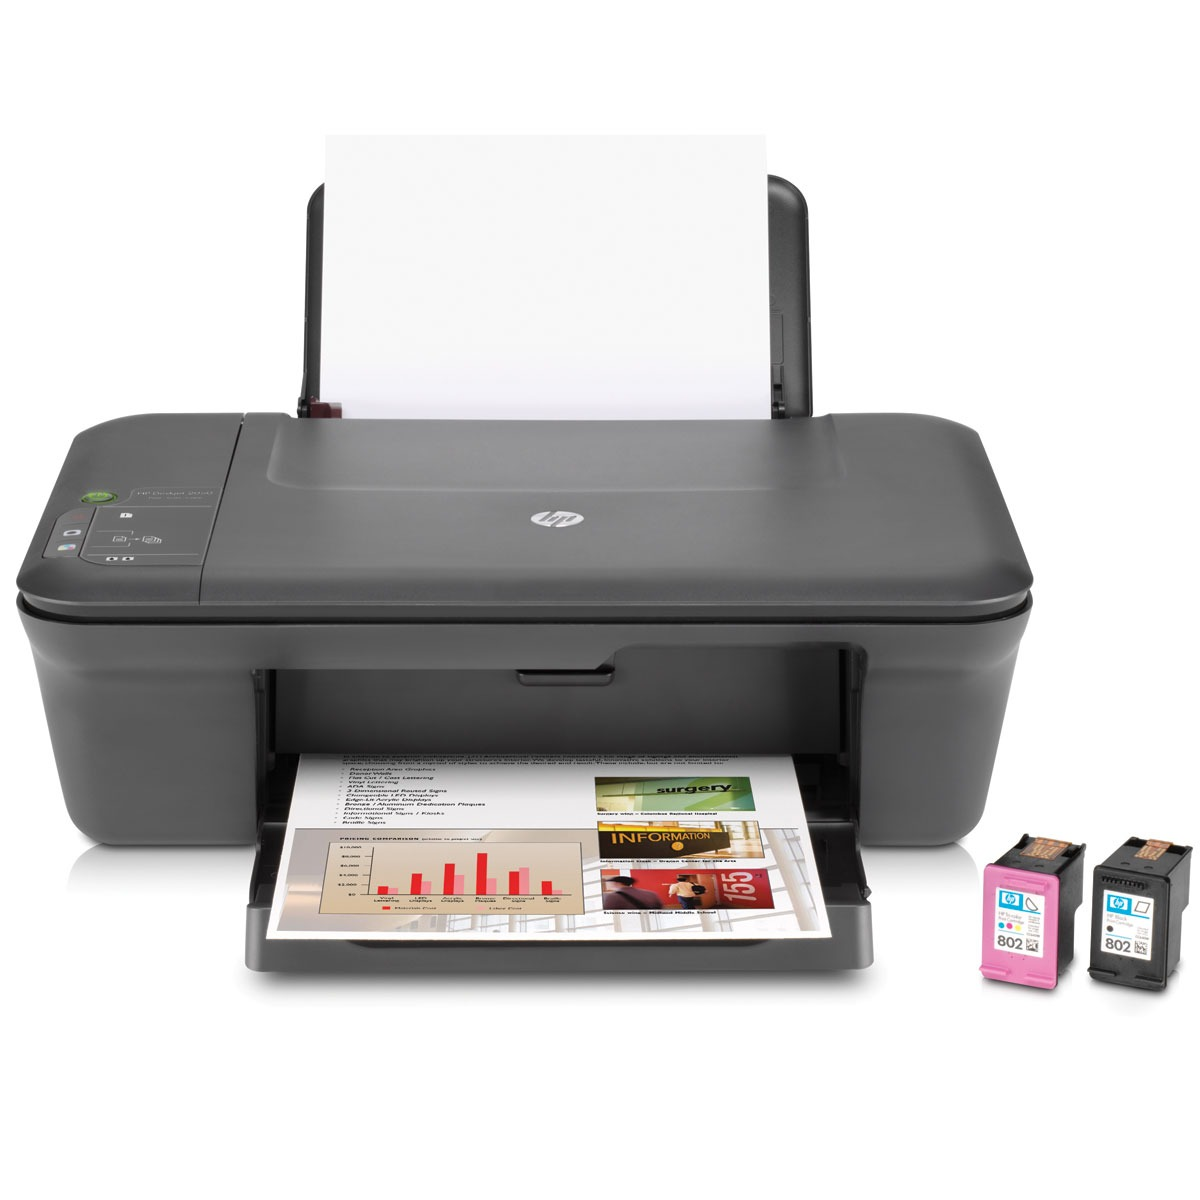 hp deskjet 2050 ch350b bgw achat vente imprimante multifonction sur. Black Bedroom Furniture Sets. Home Design Ideas